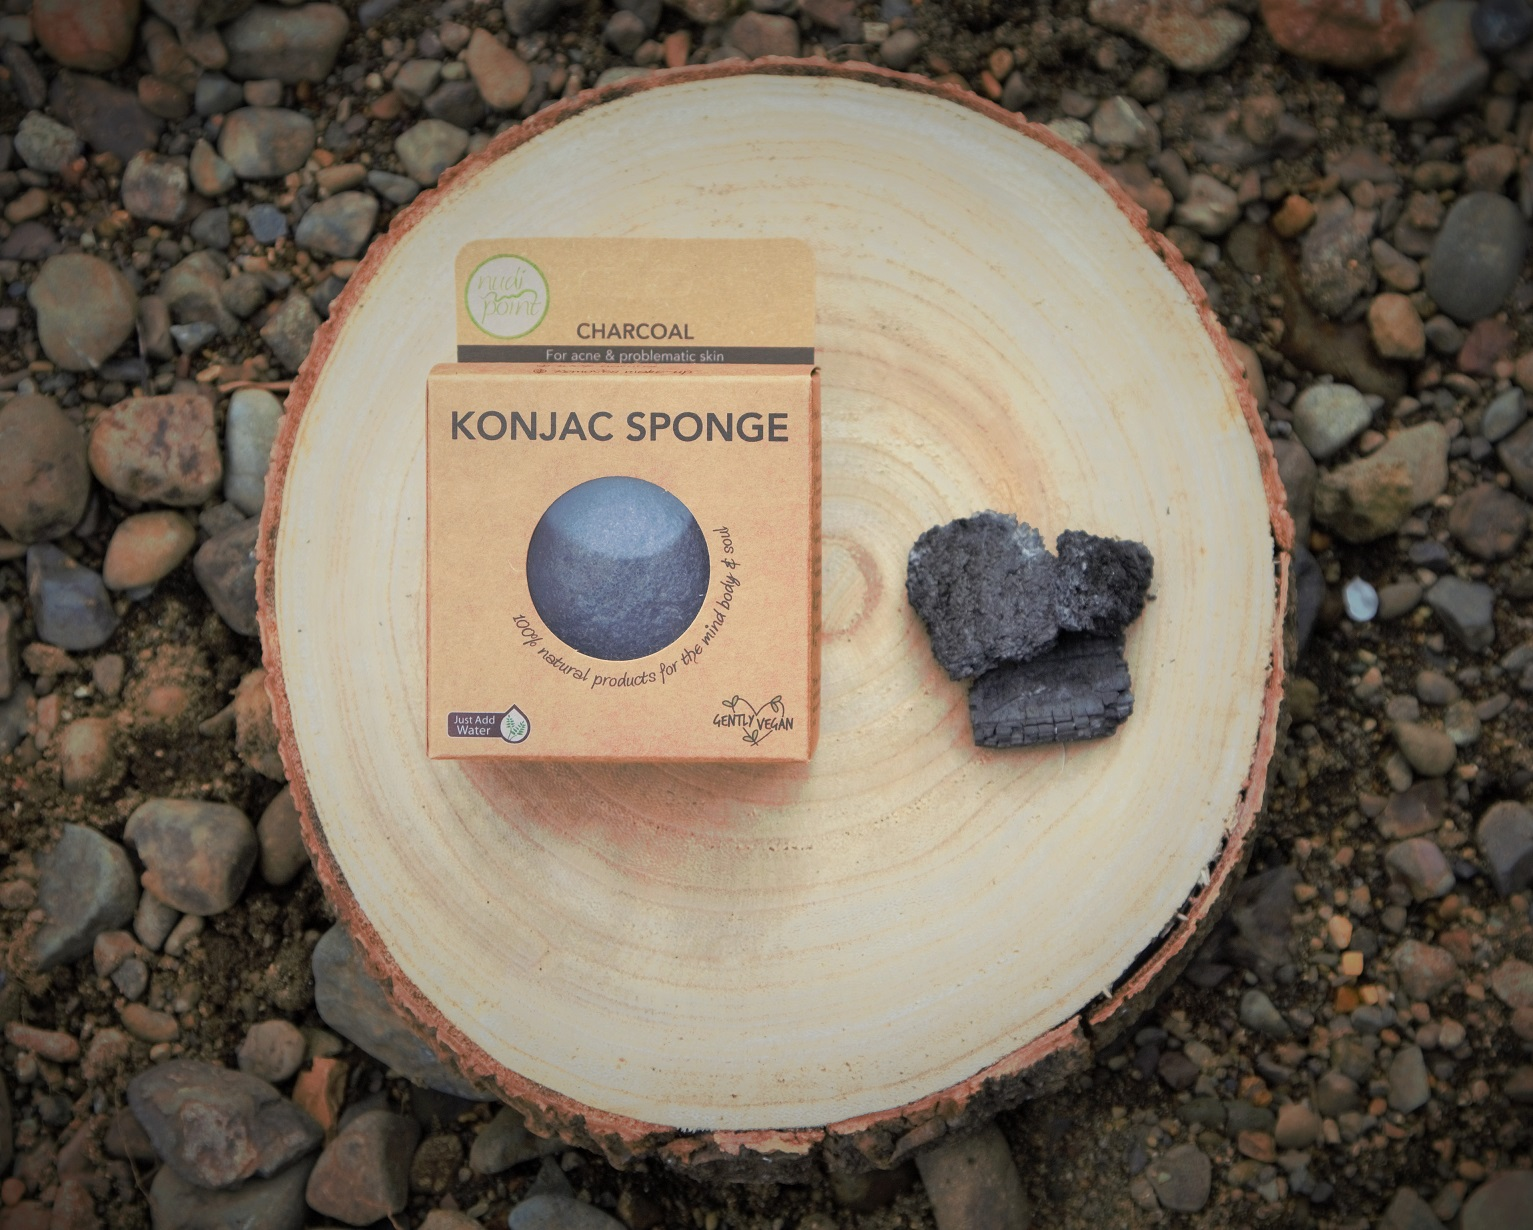 Nudi Point Konjac Sponge (Activated Charcoal for oily or acne prone skin) via @chooicenz